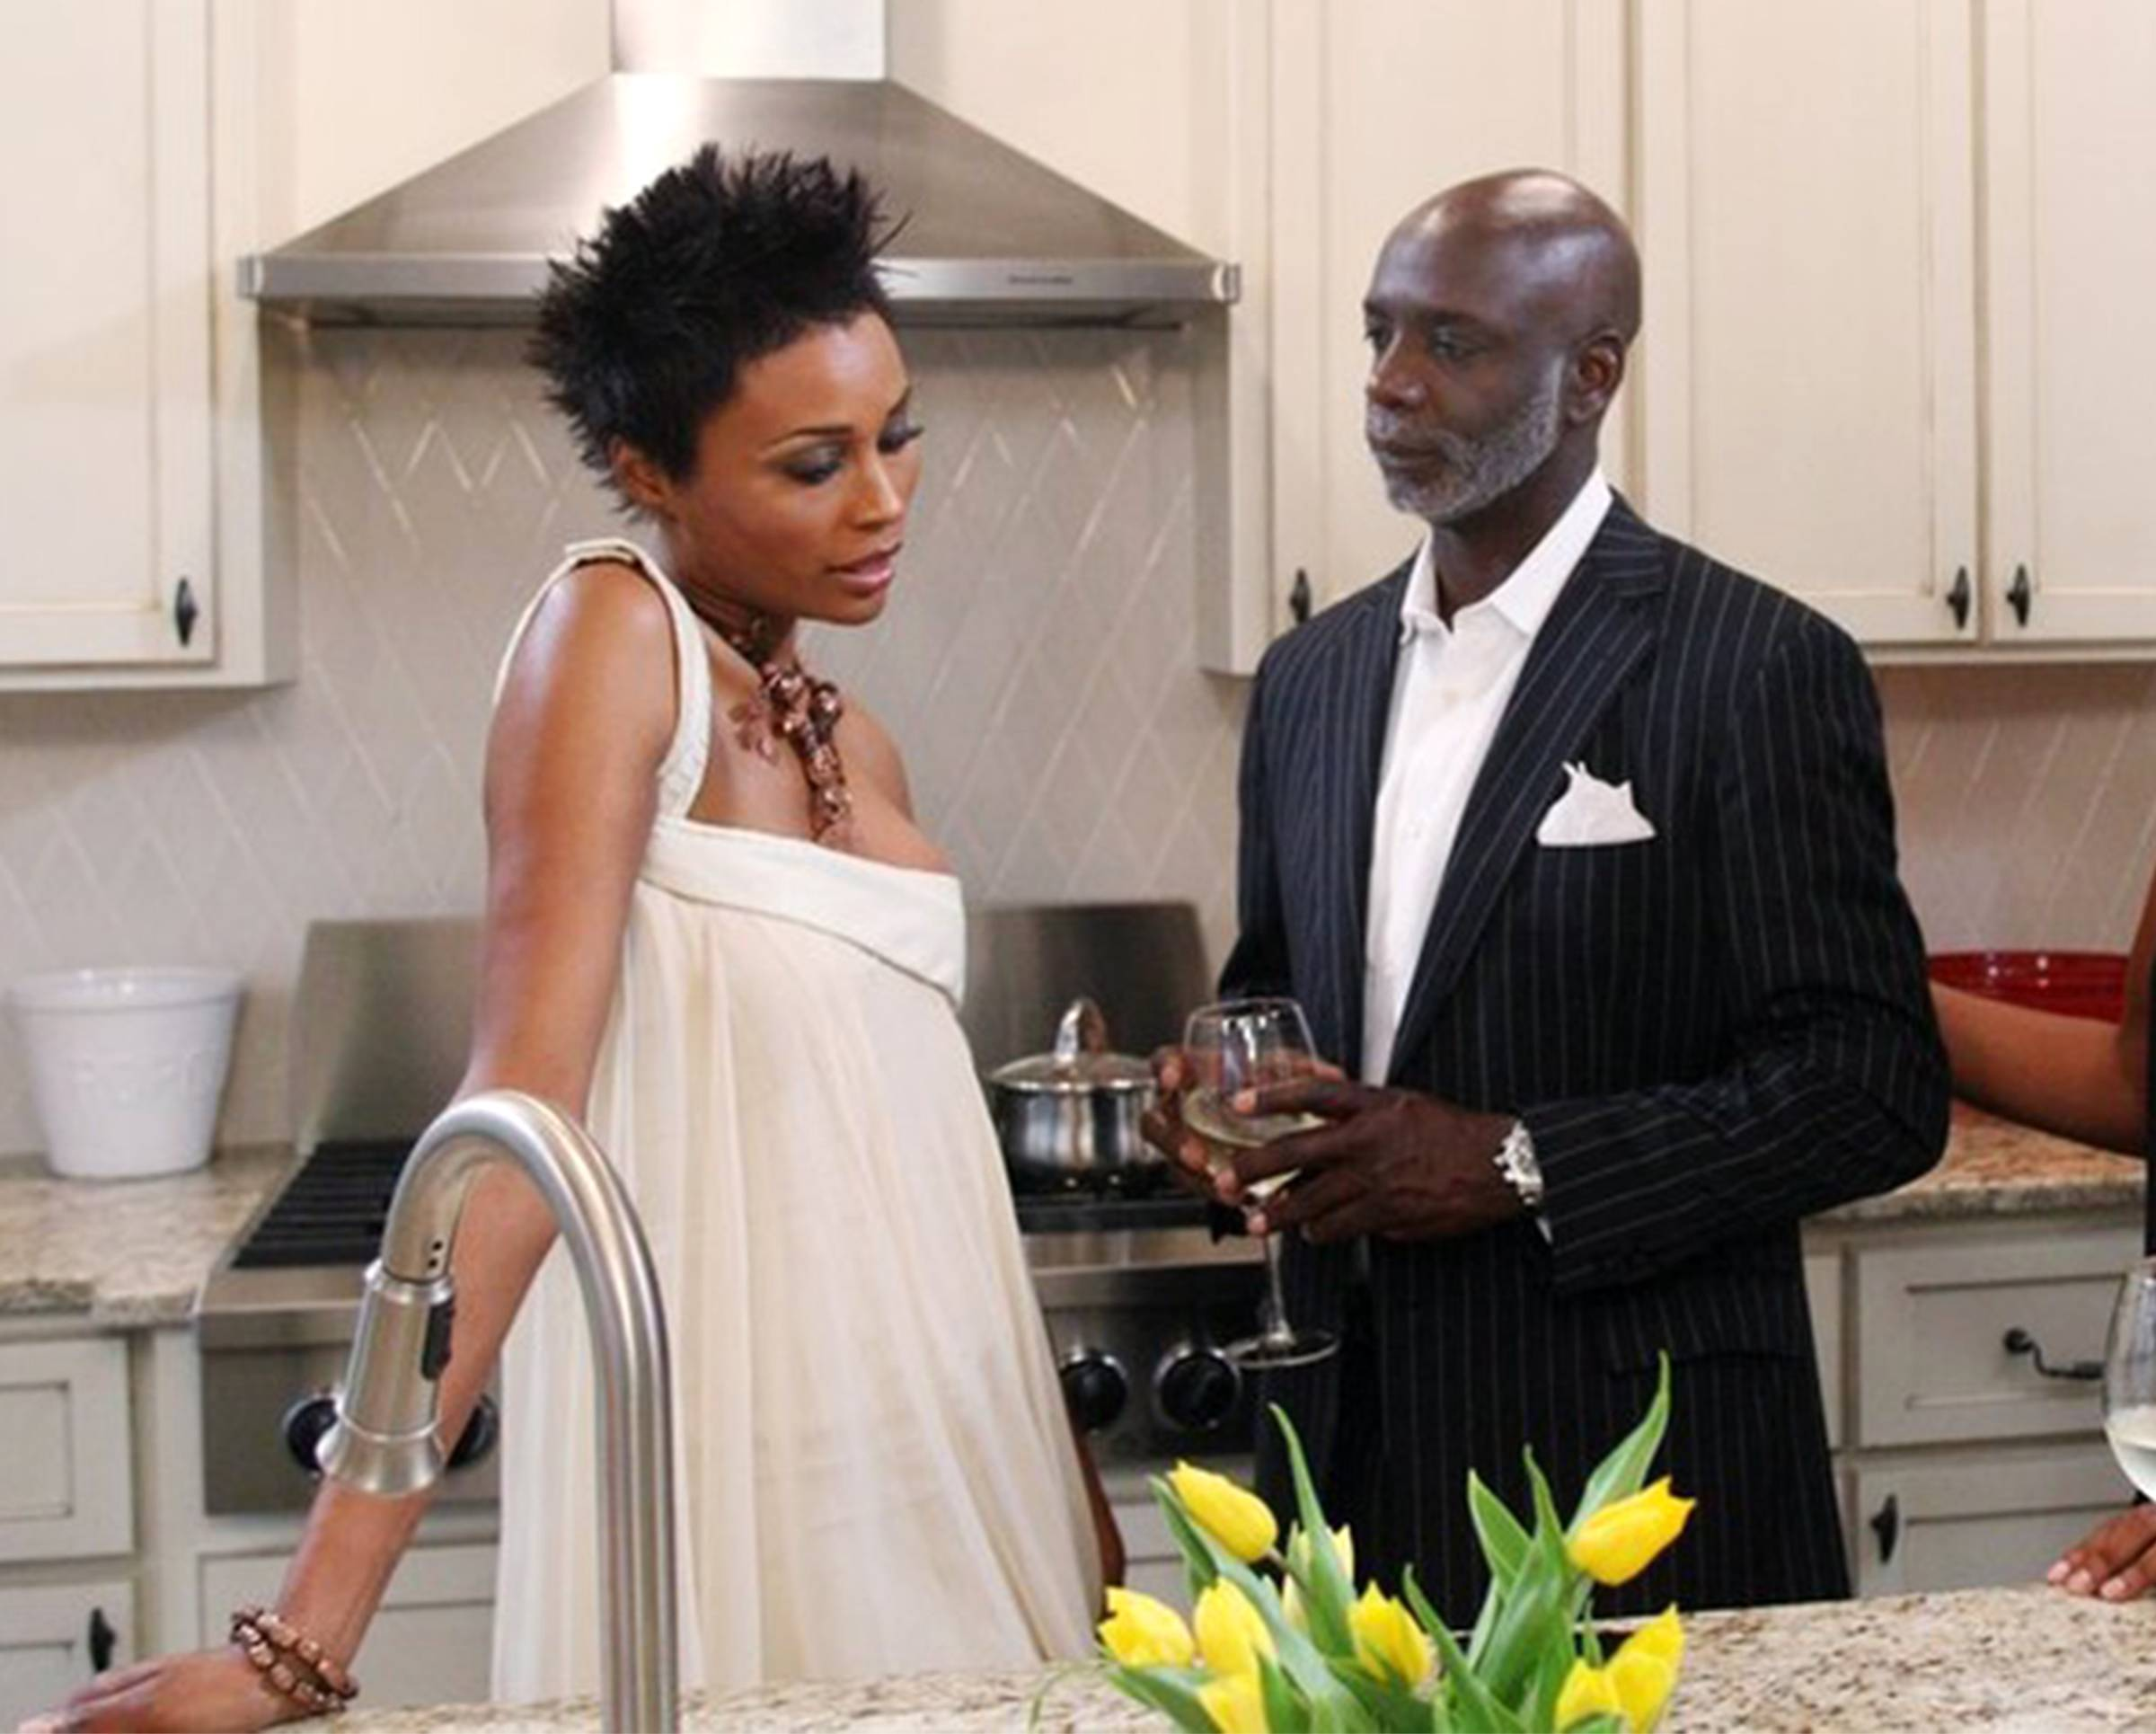 Husband and Wife  - Alongside her on Real Housewives of Atlanta is her loving husband,Peter Thomas, who she has been married to for five years. Through their ups and downs and rumored splits, they have managed to keep their marriage going strong! Black love at its best. (Photo: Wilford Harewood/Bravo)